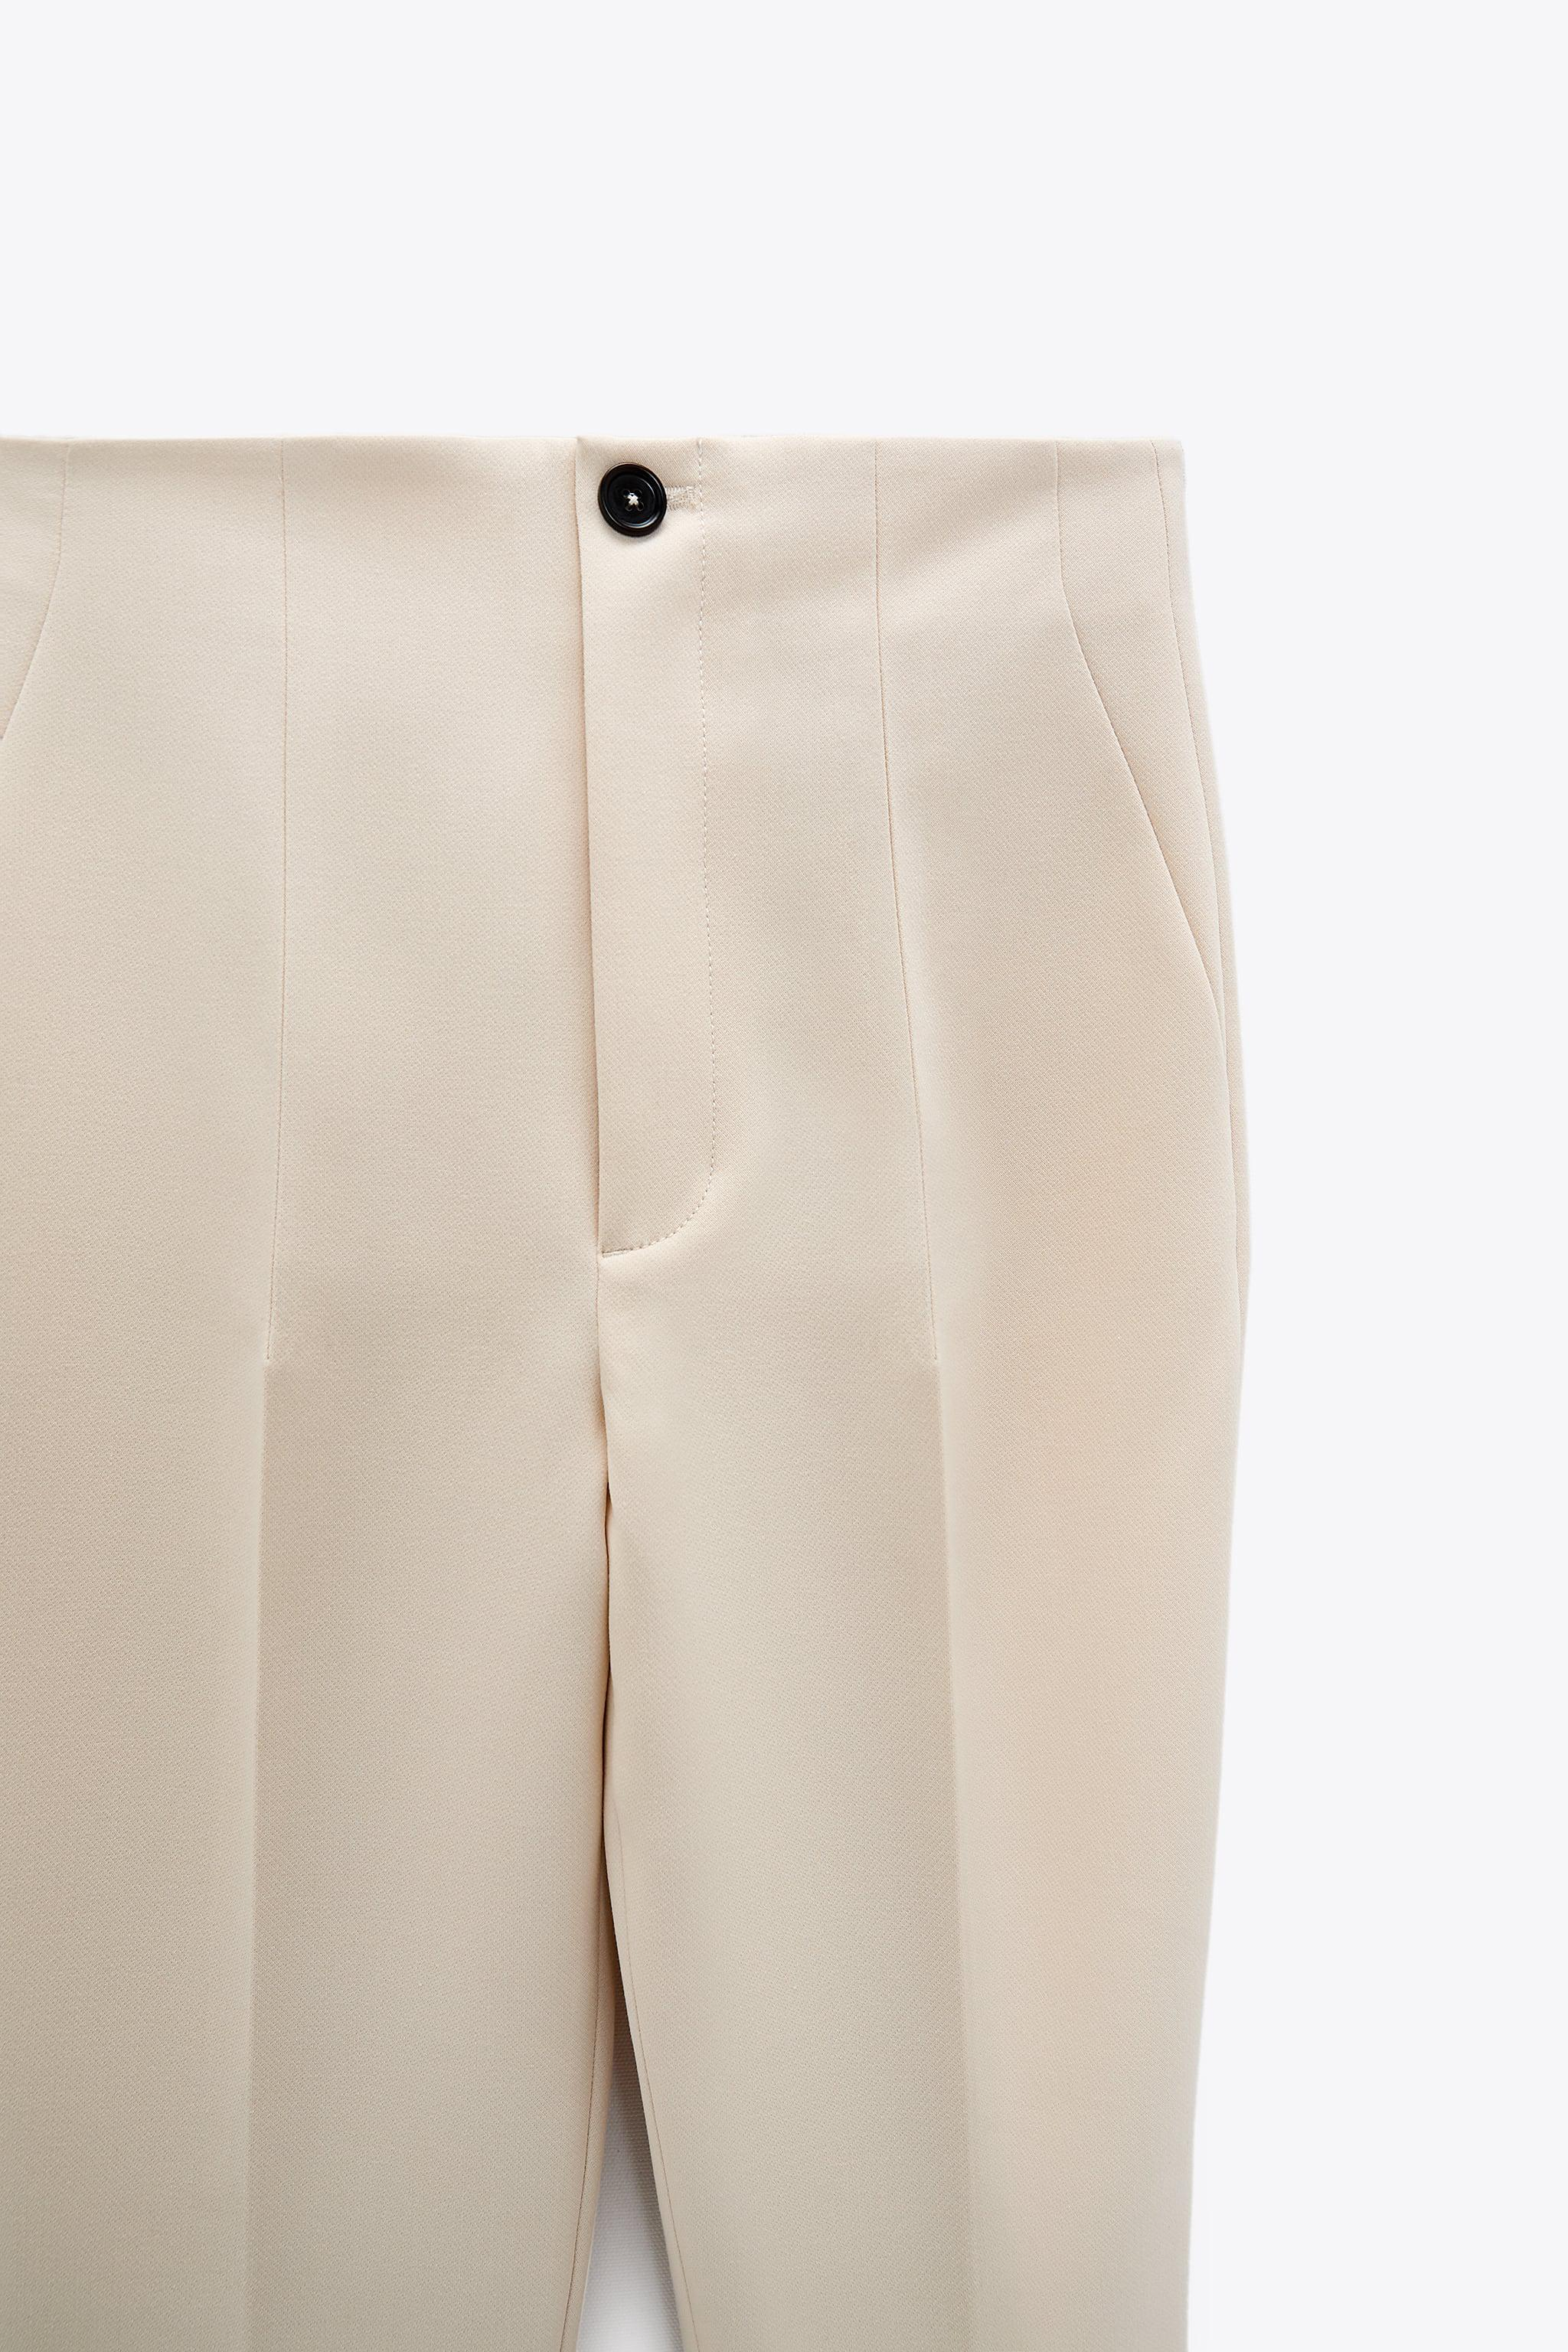 HIGH-WAISTED PANTS WITH VENTS 10